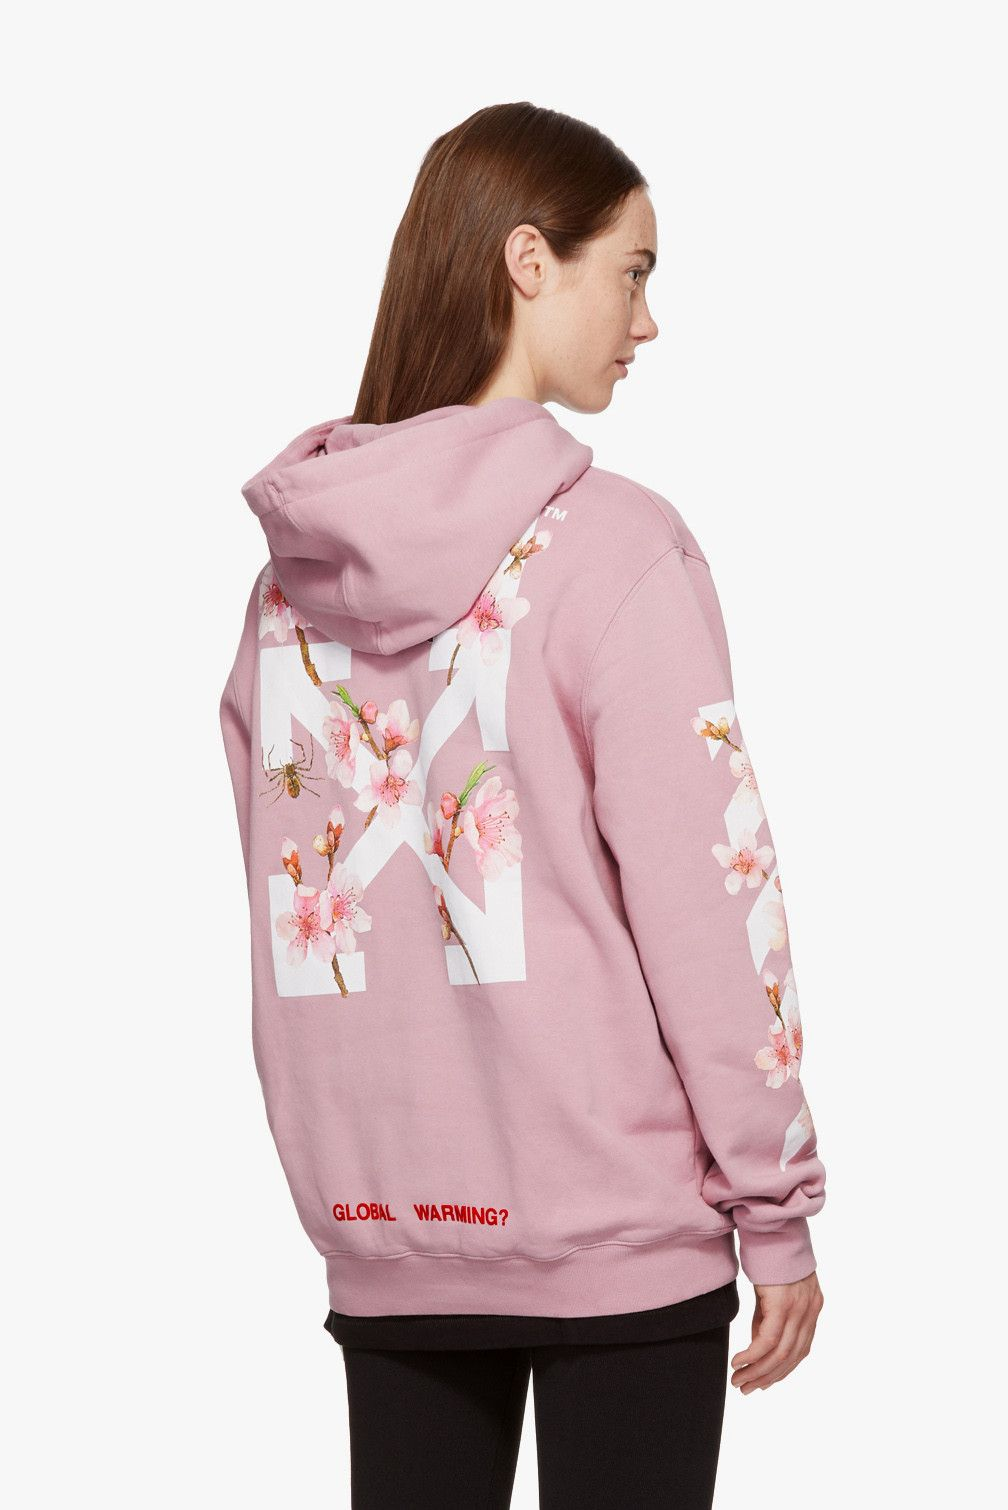 Off White S Pink Cherry Blossom Hoodie Is Cozy With A Statement In 2021 Off White Hoodie Hoodies White Hoodie [ 1510 x 1008 Pixel ]